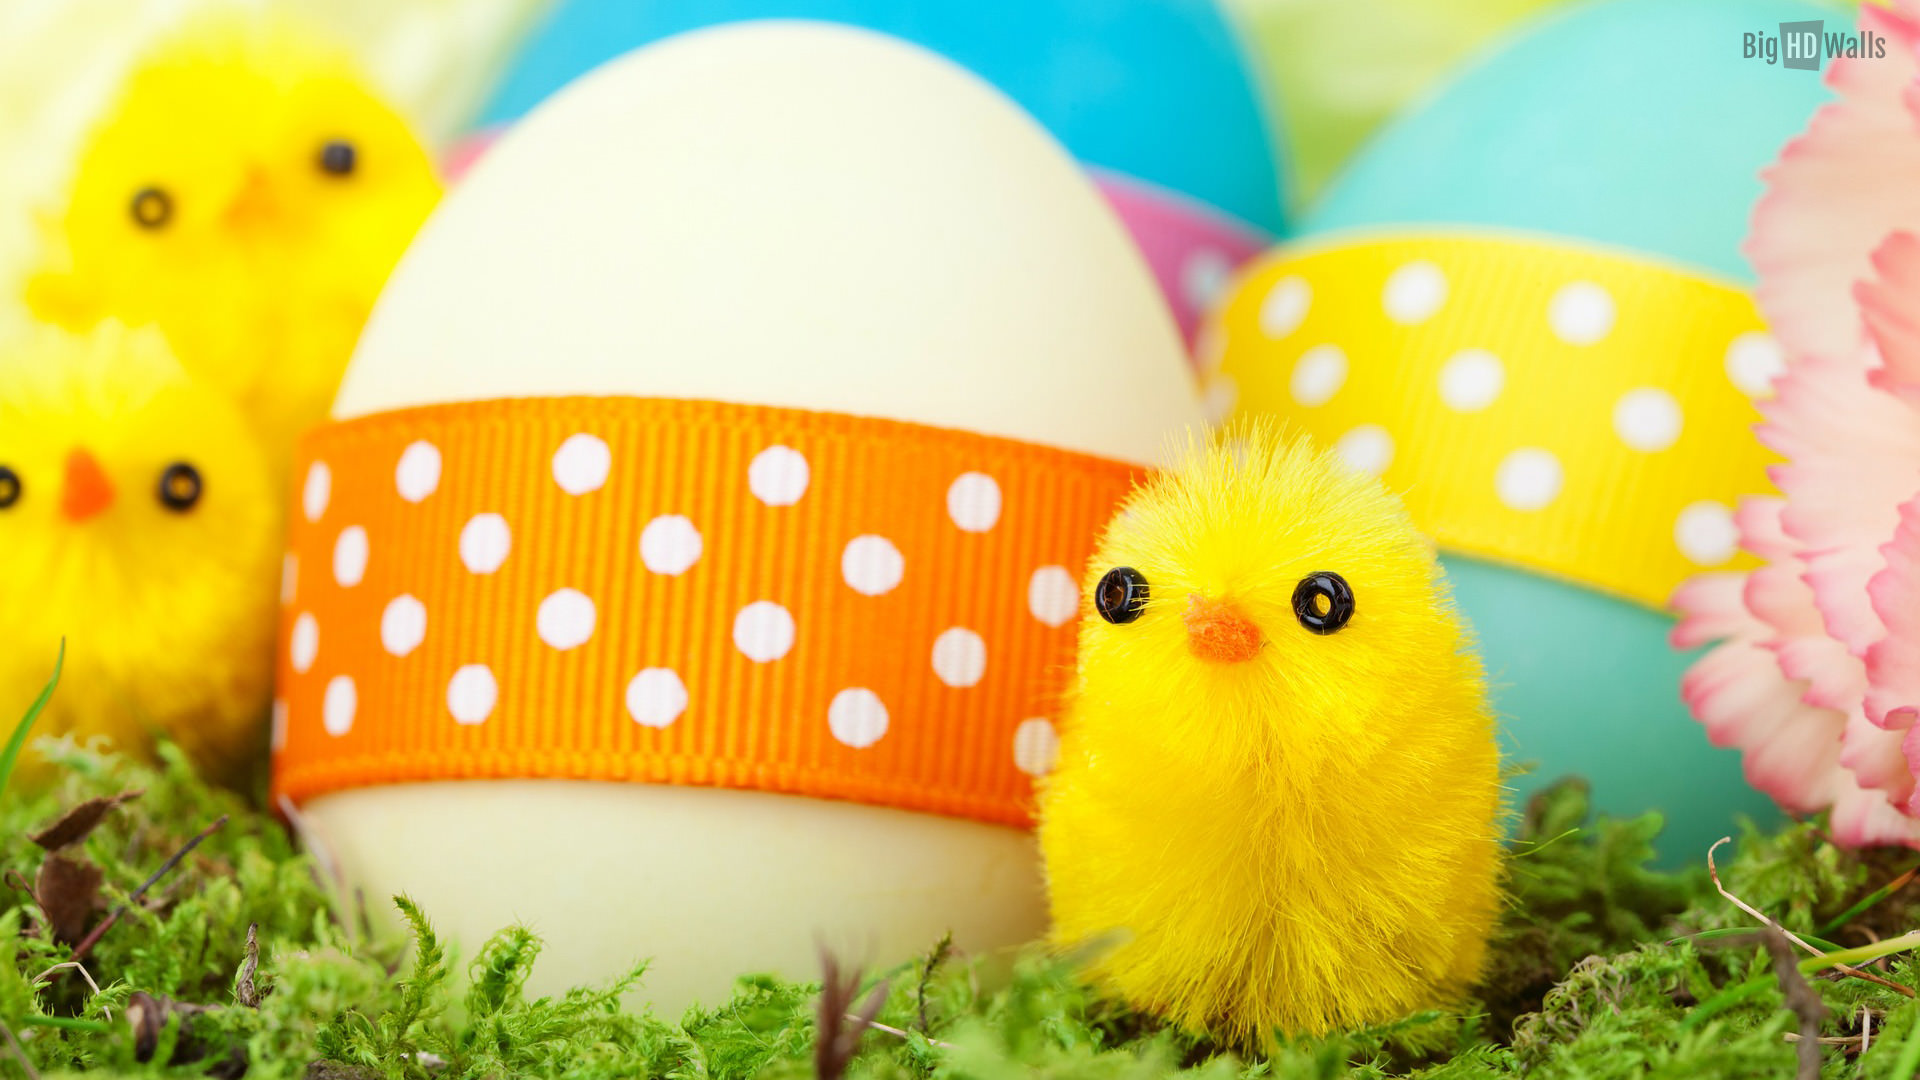 Easter,Background,Designs,Egg,Chicken,Ribbon,Flowers